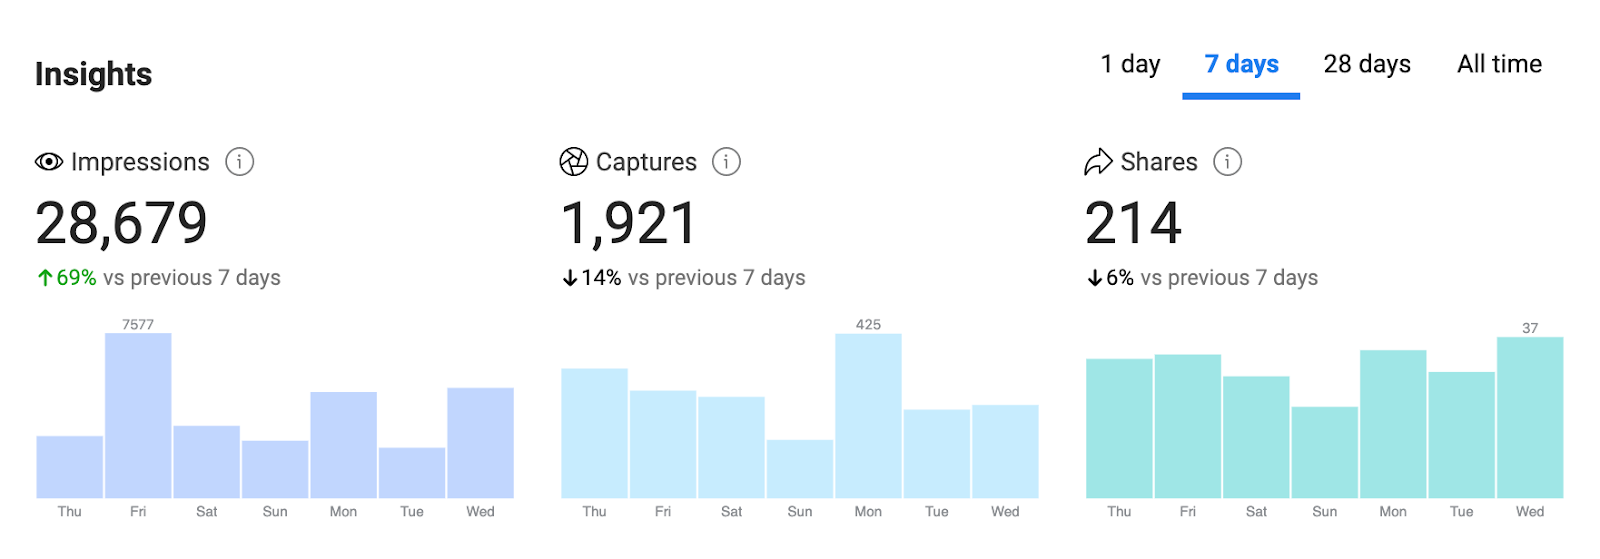 A sample set of a week's data for a set of Instagram filters.